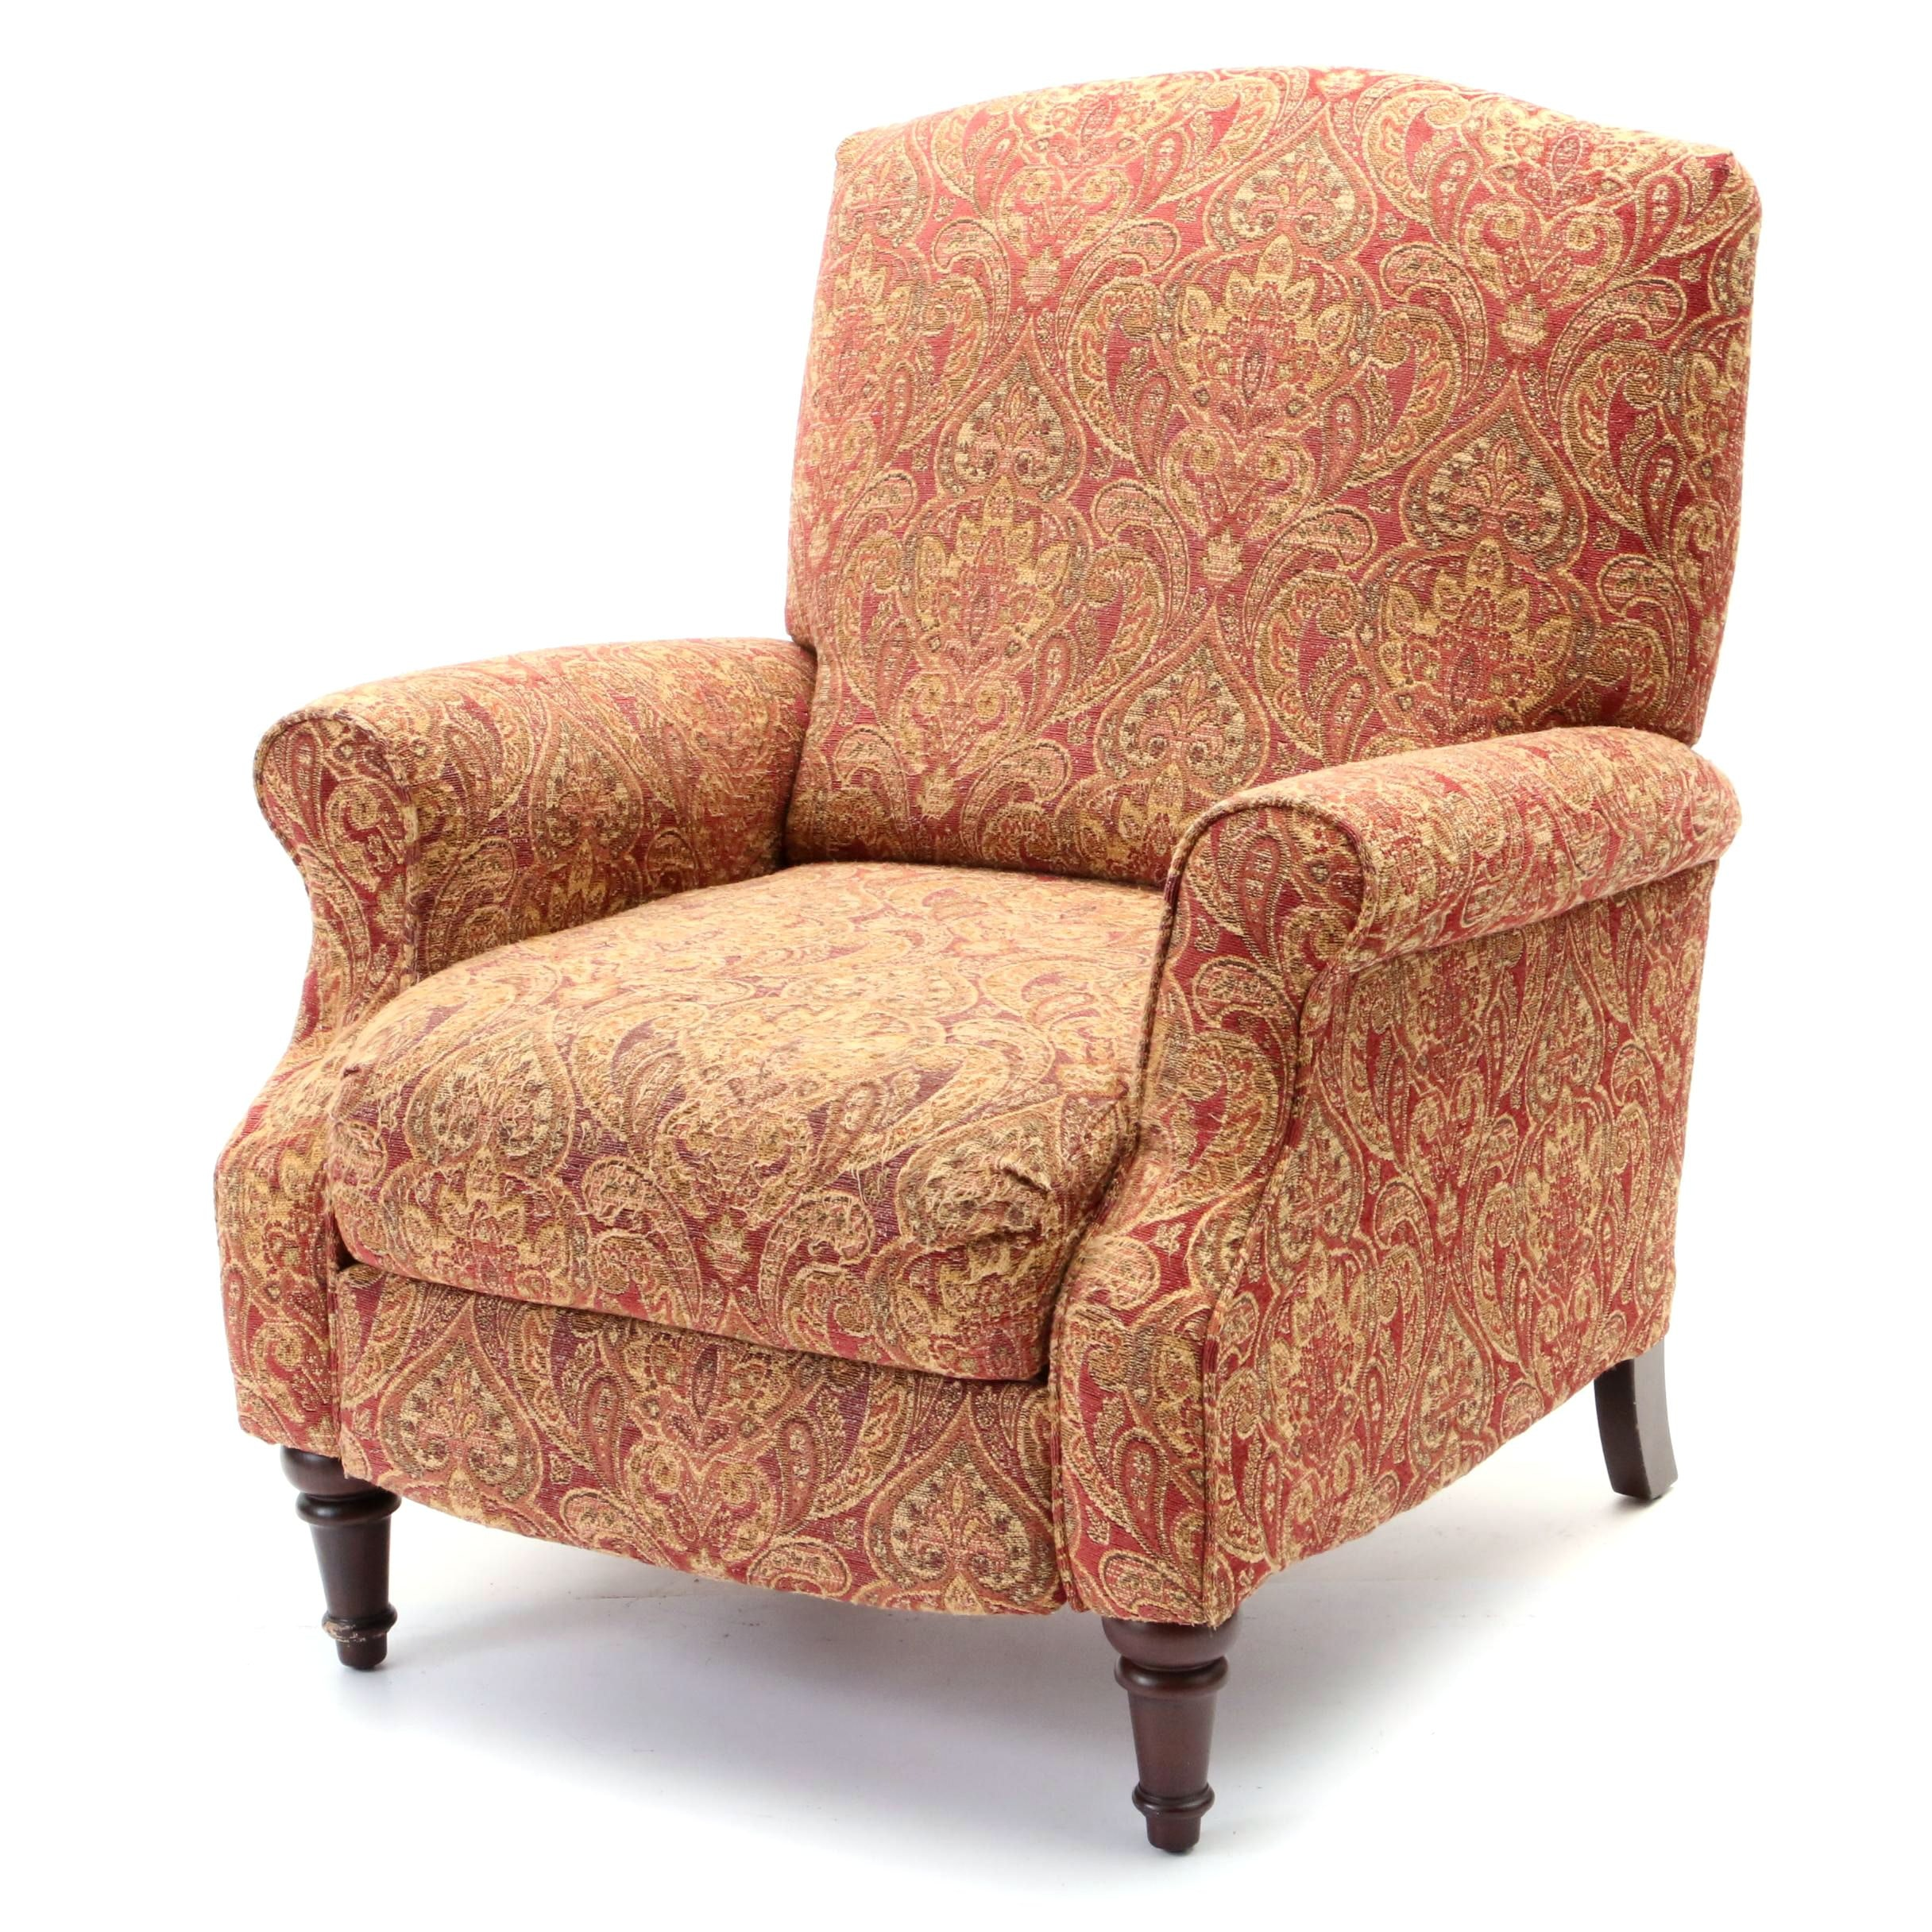 Upholstered Arm Chair Recliner